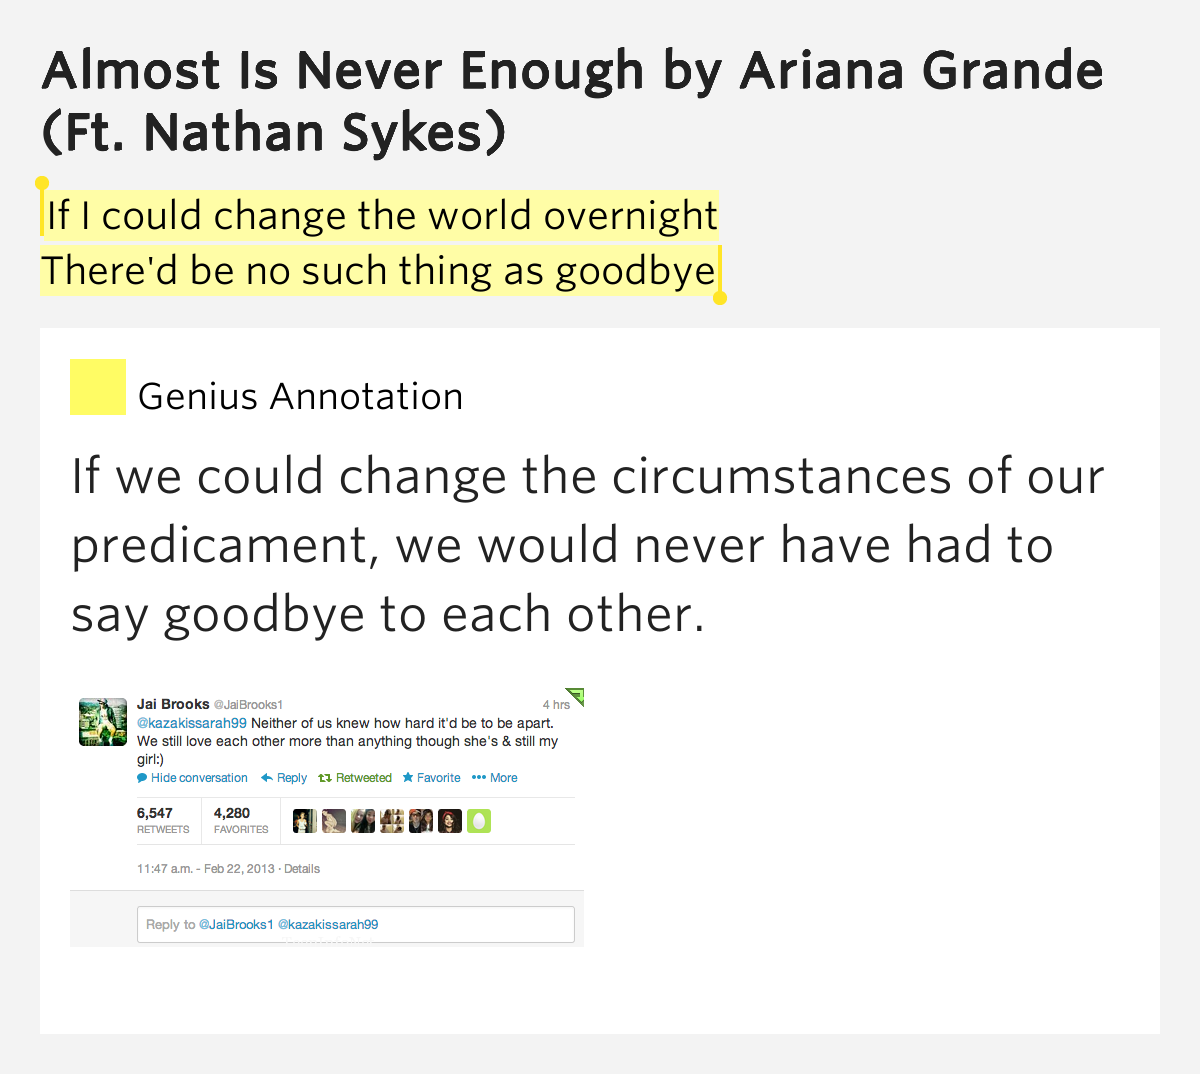 Ariana Grande - Almost Is Never Enough Lyrics Meaning